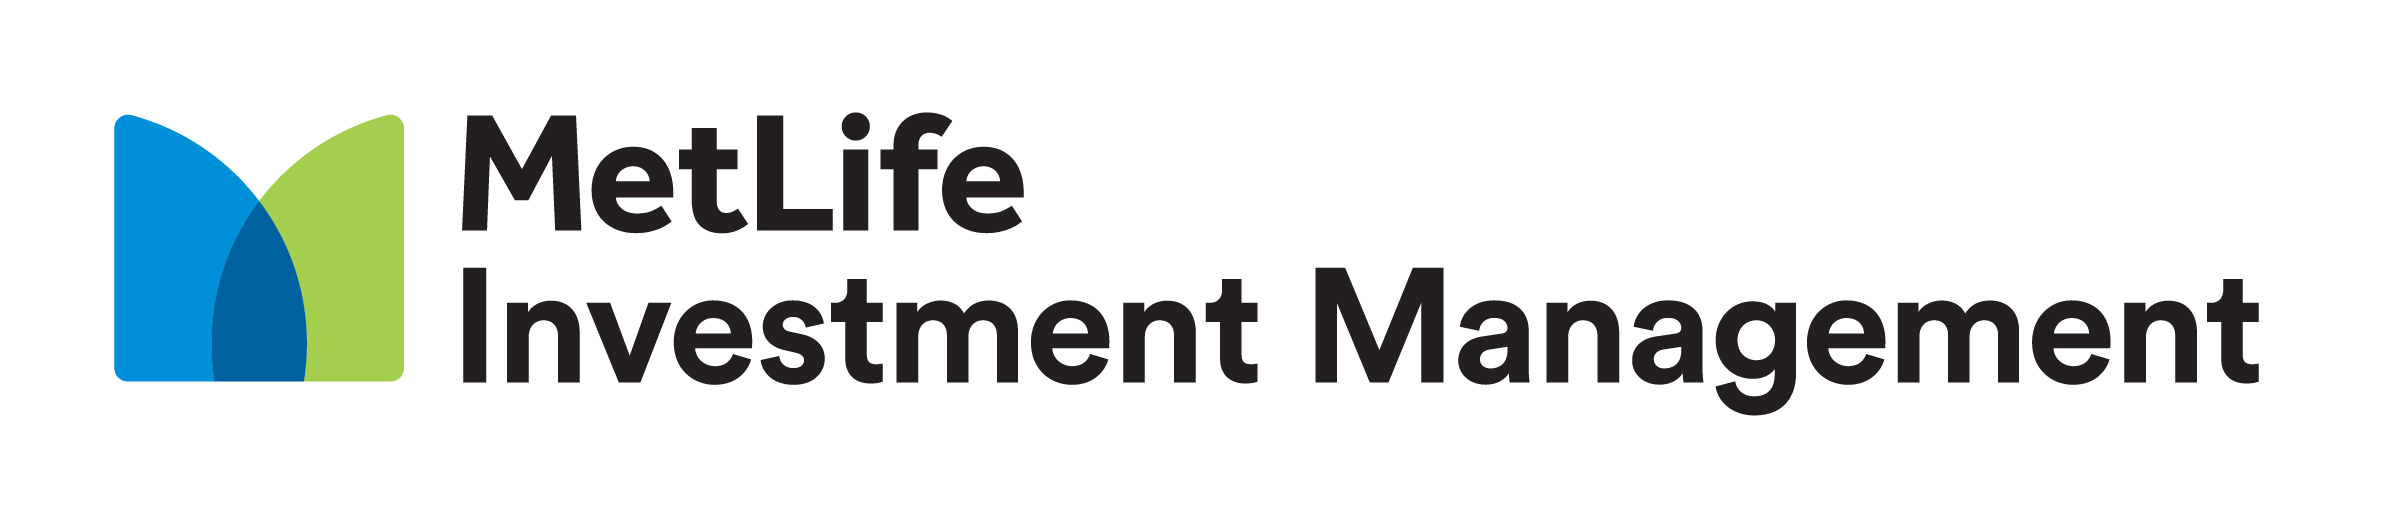 MetLife Investments Logo